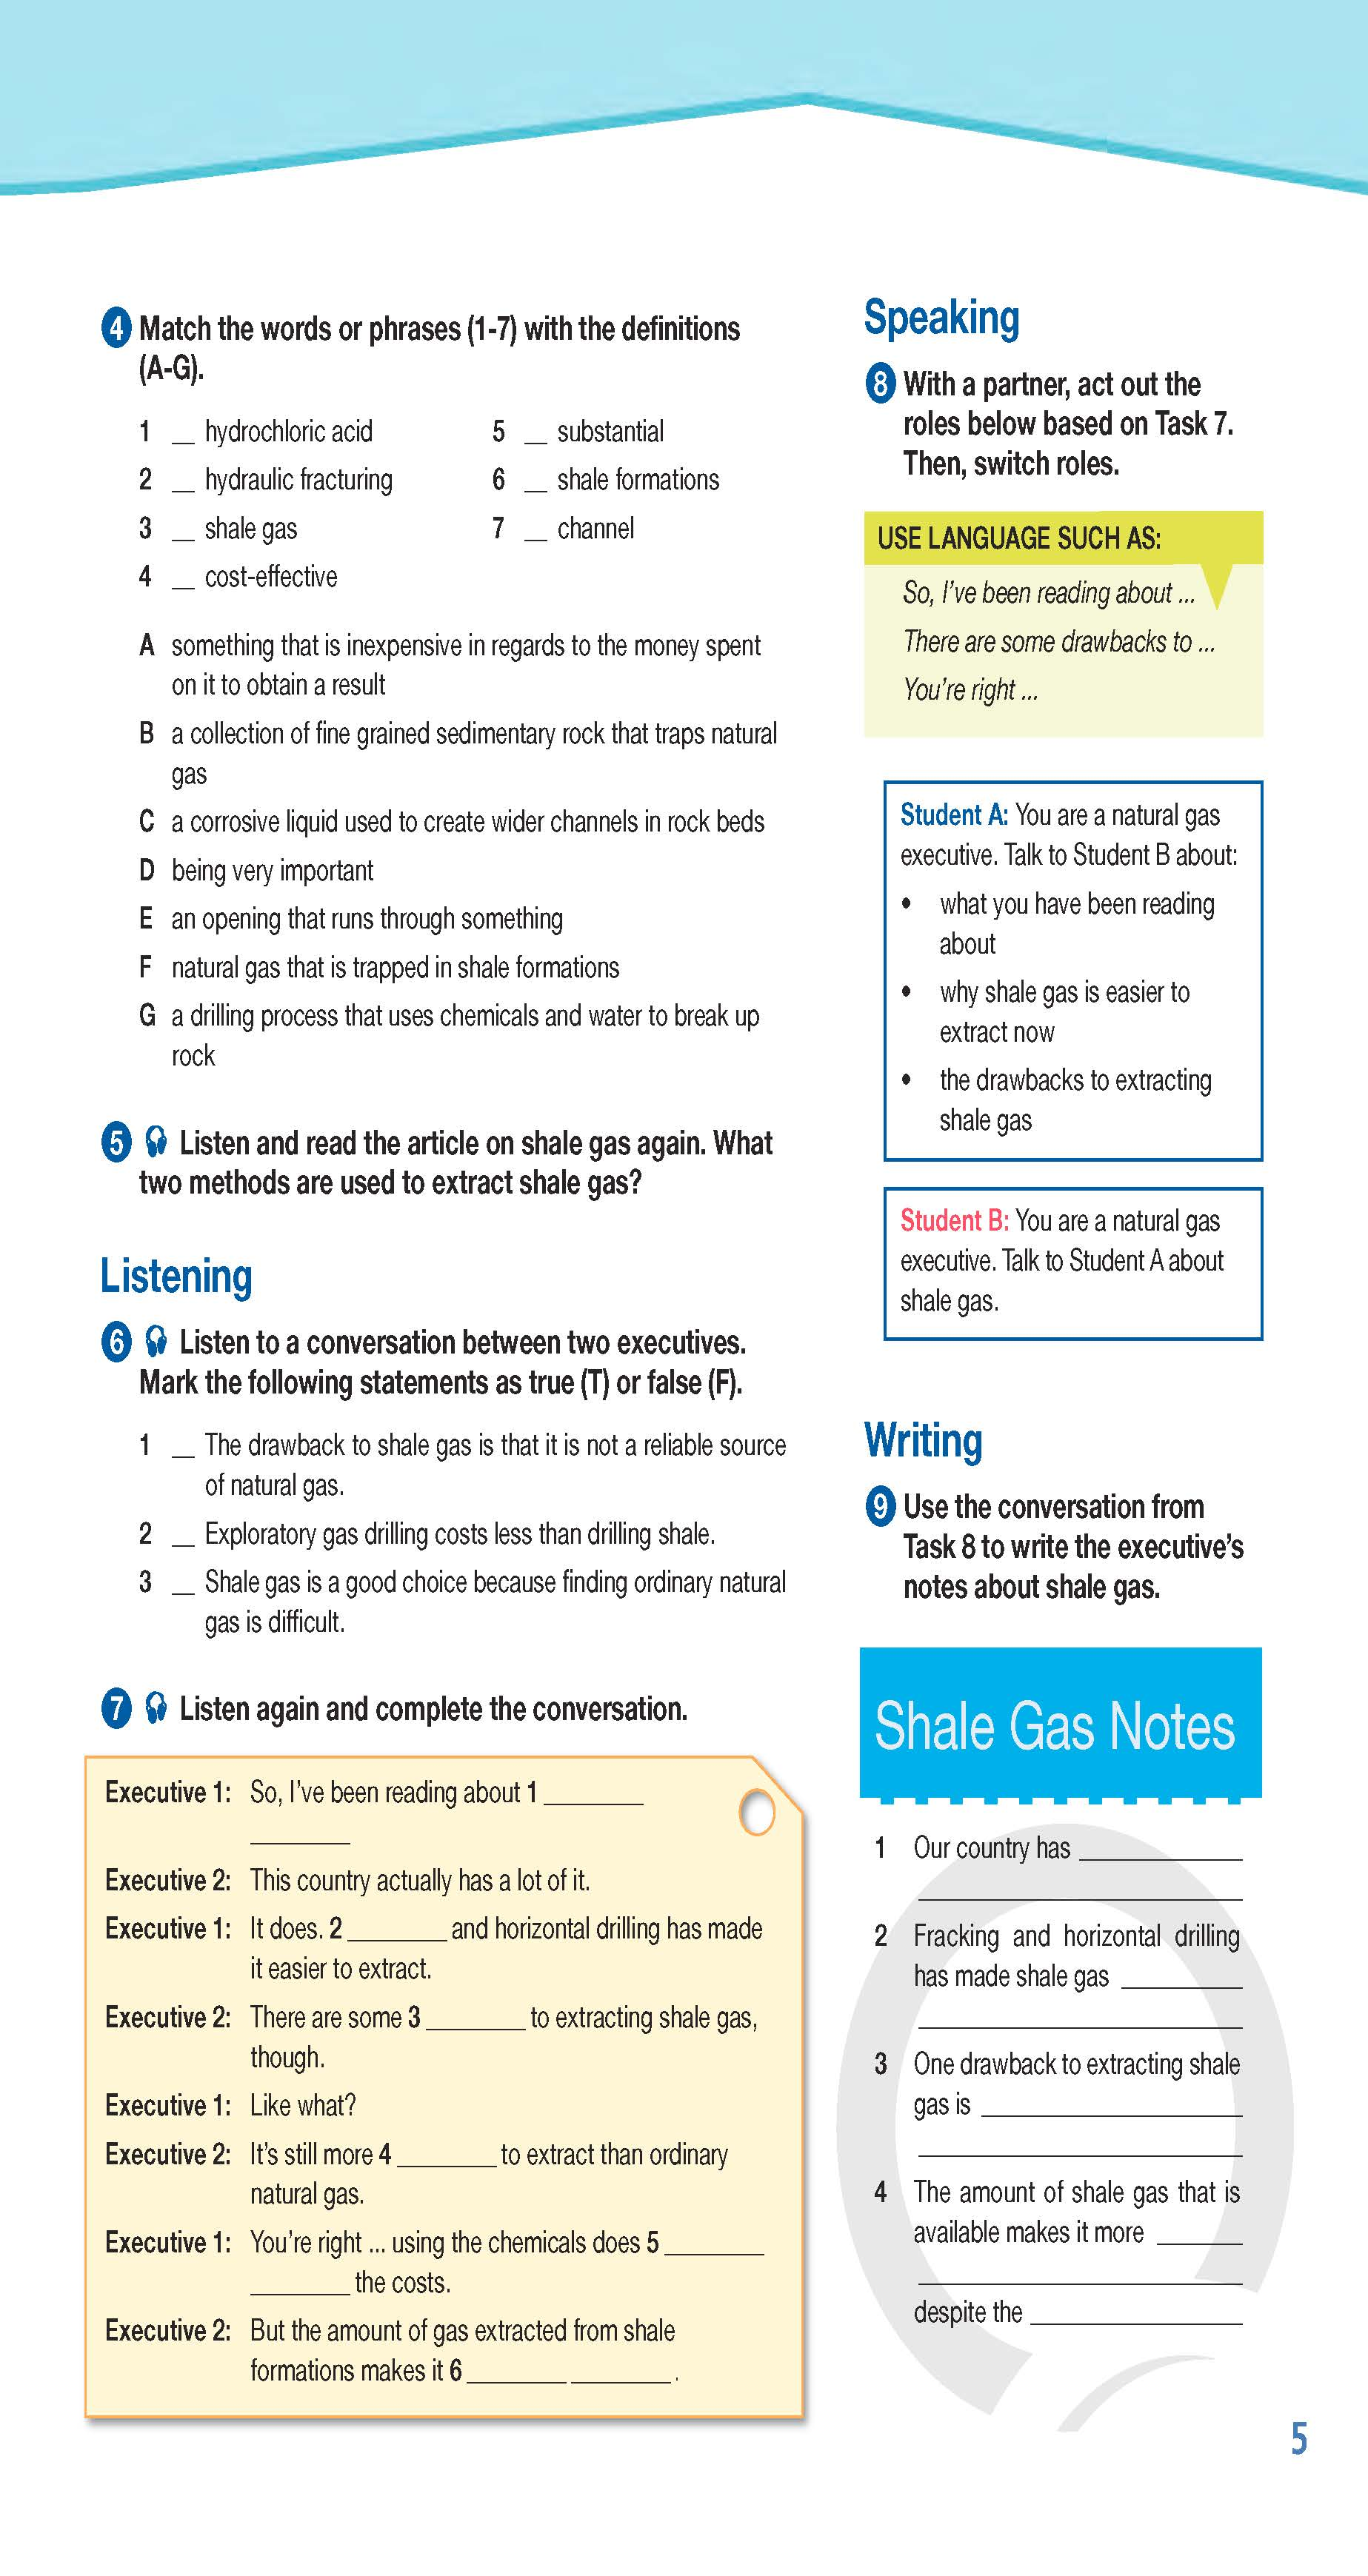 ESP English for Specific Purposes - Career Paths: Natural Gas II - Sample Page 2